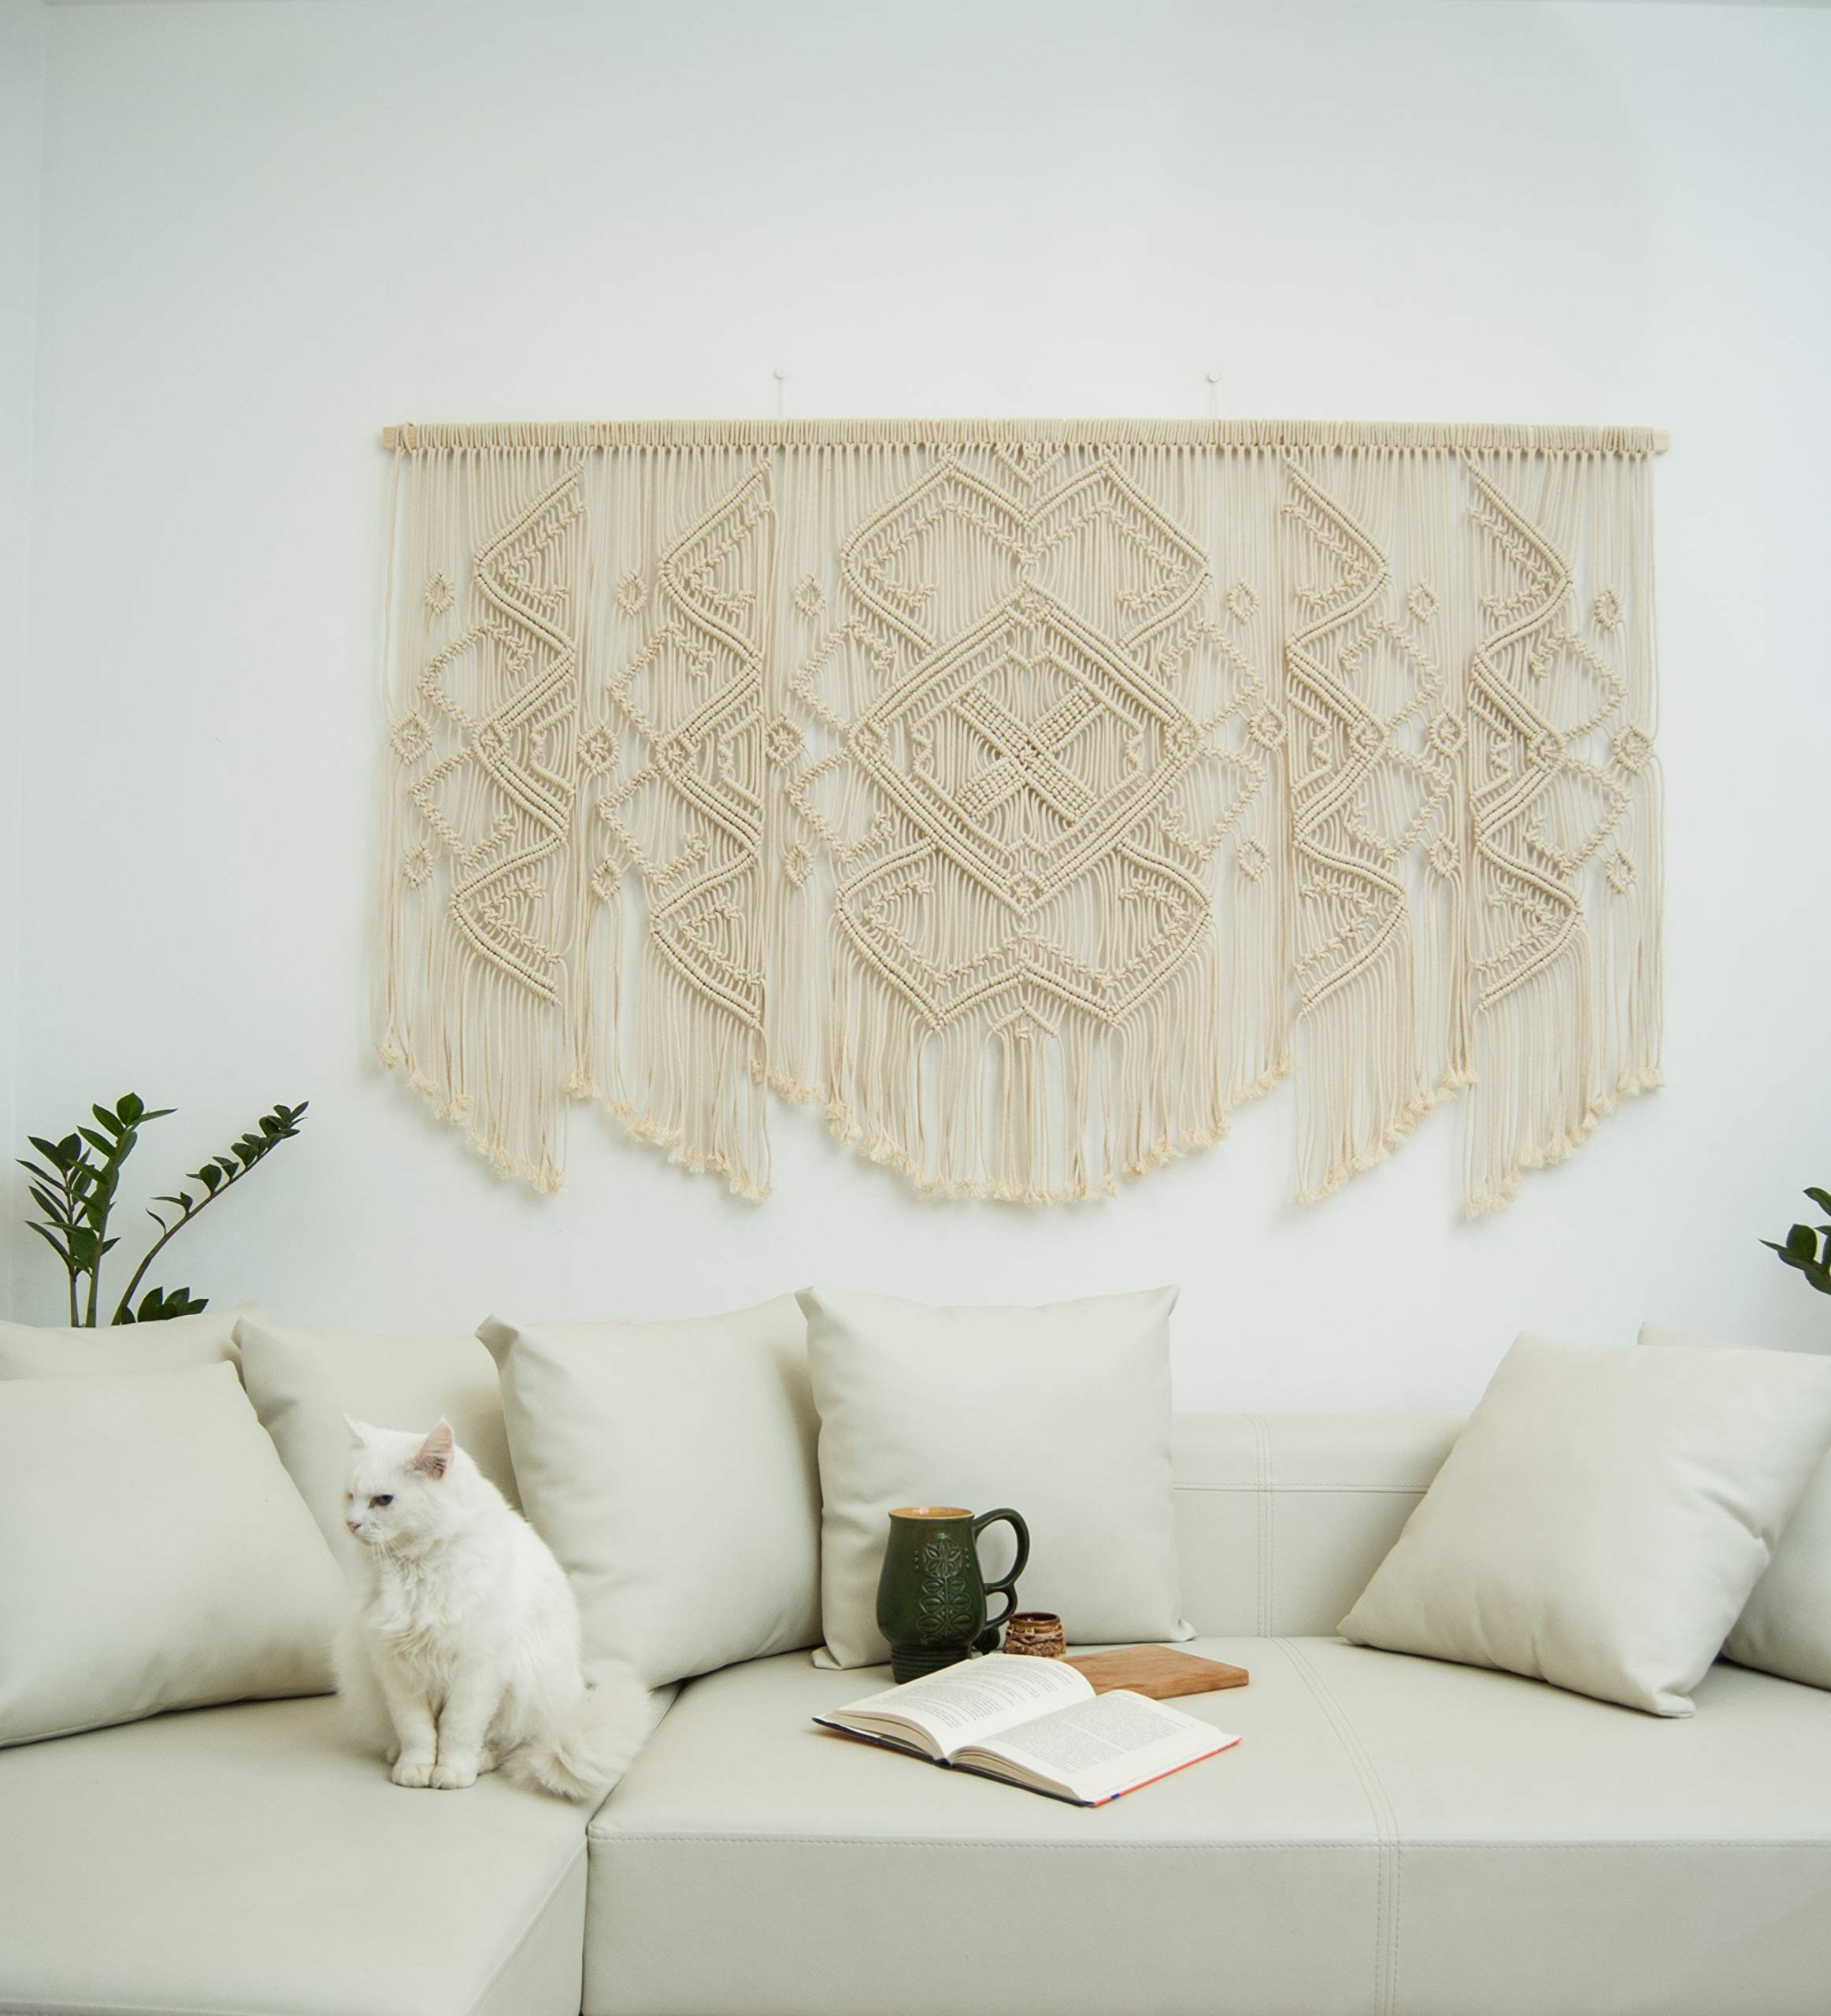 Macrame wall hanging large – Wall hangings, Boho wall decor, Tapestry for wall - Living room decorations by The Woven Dream Factory